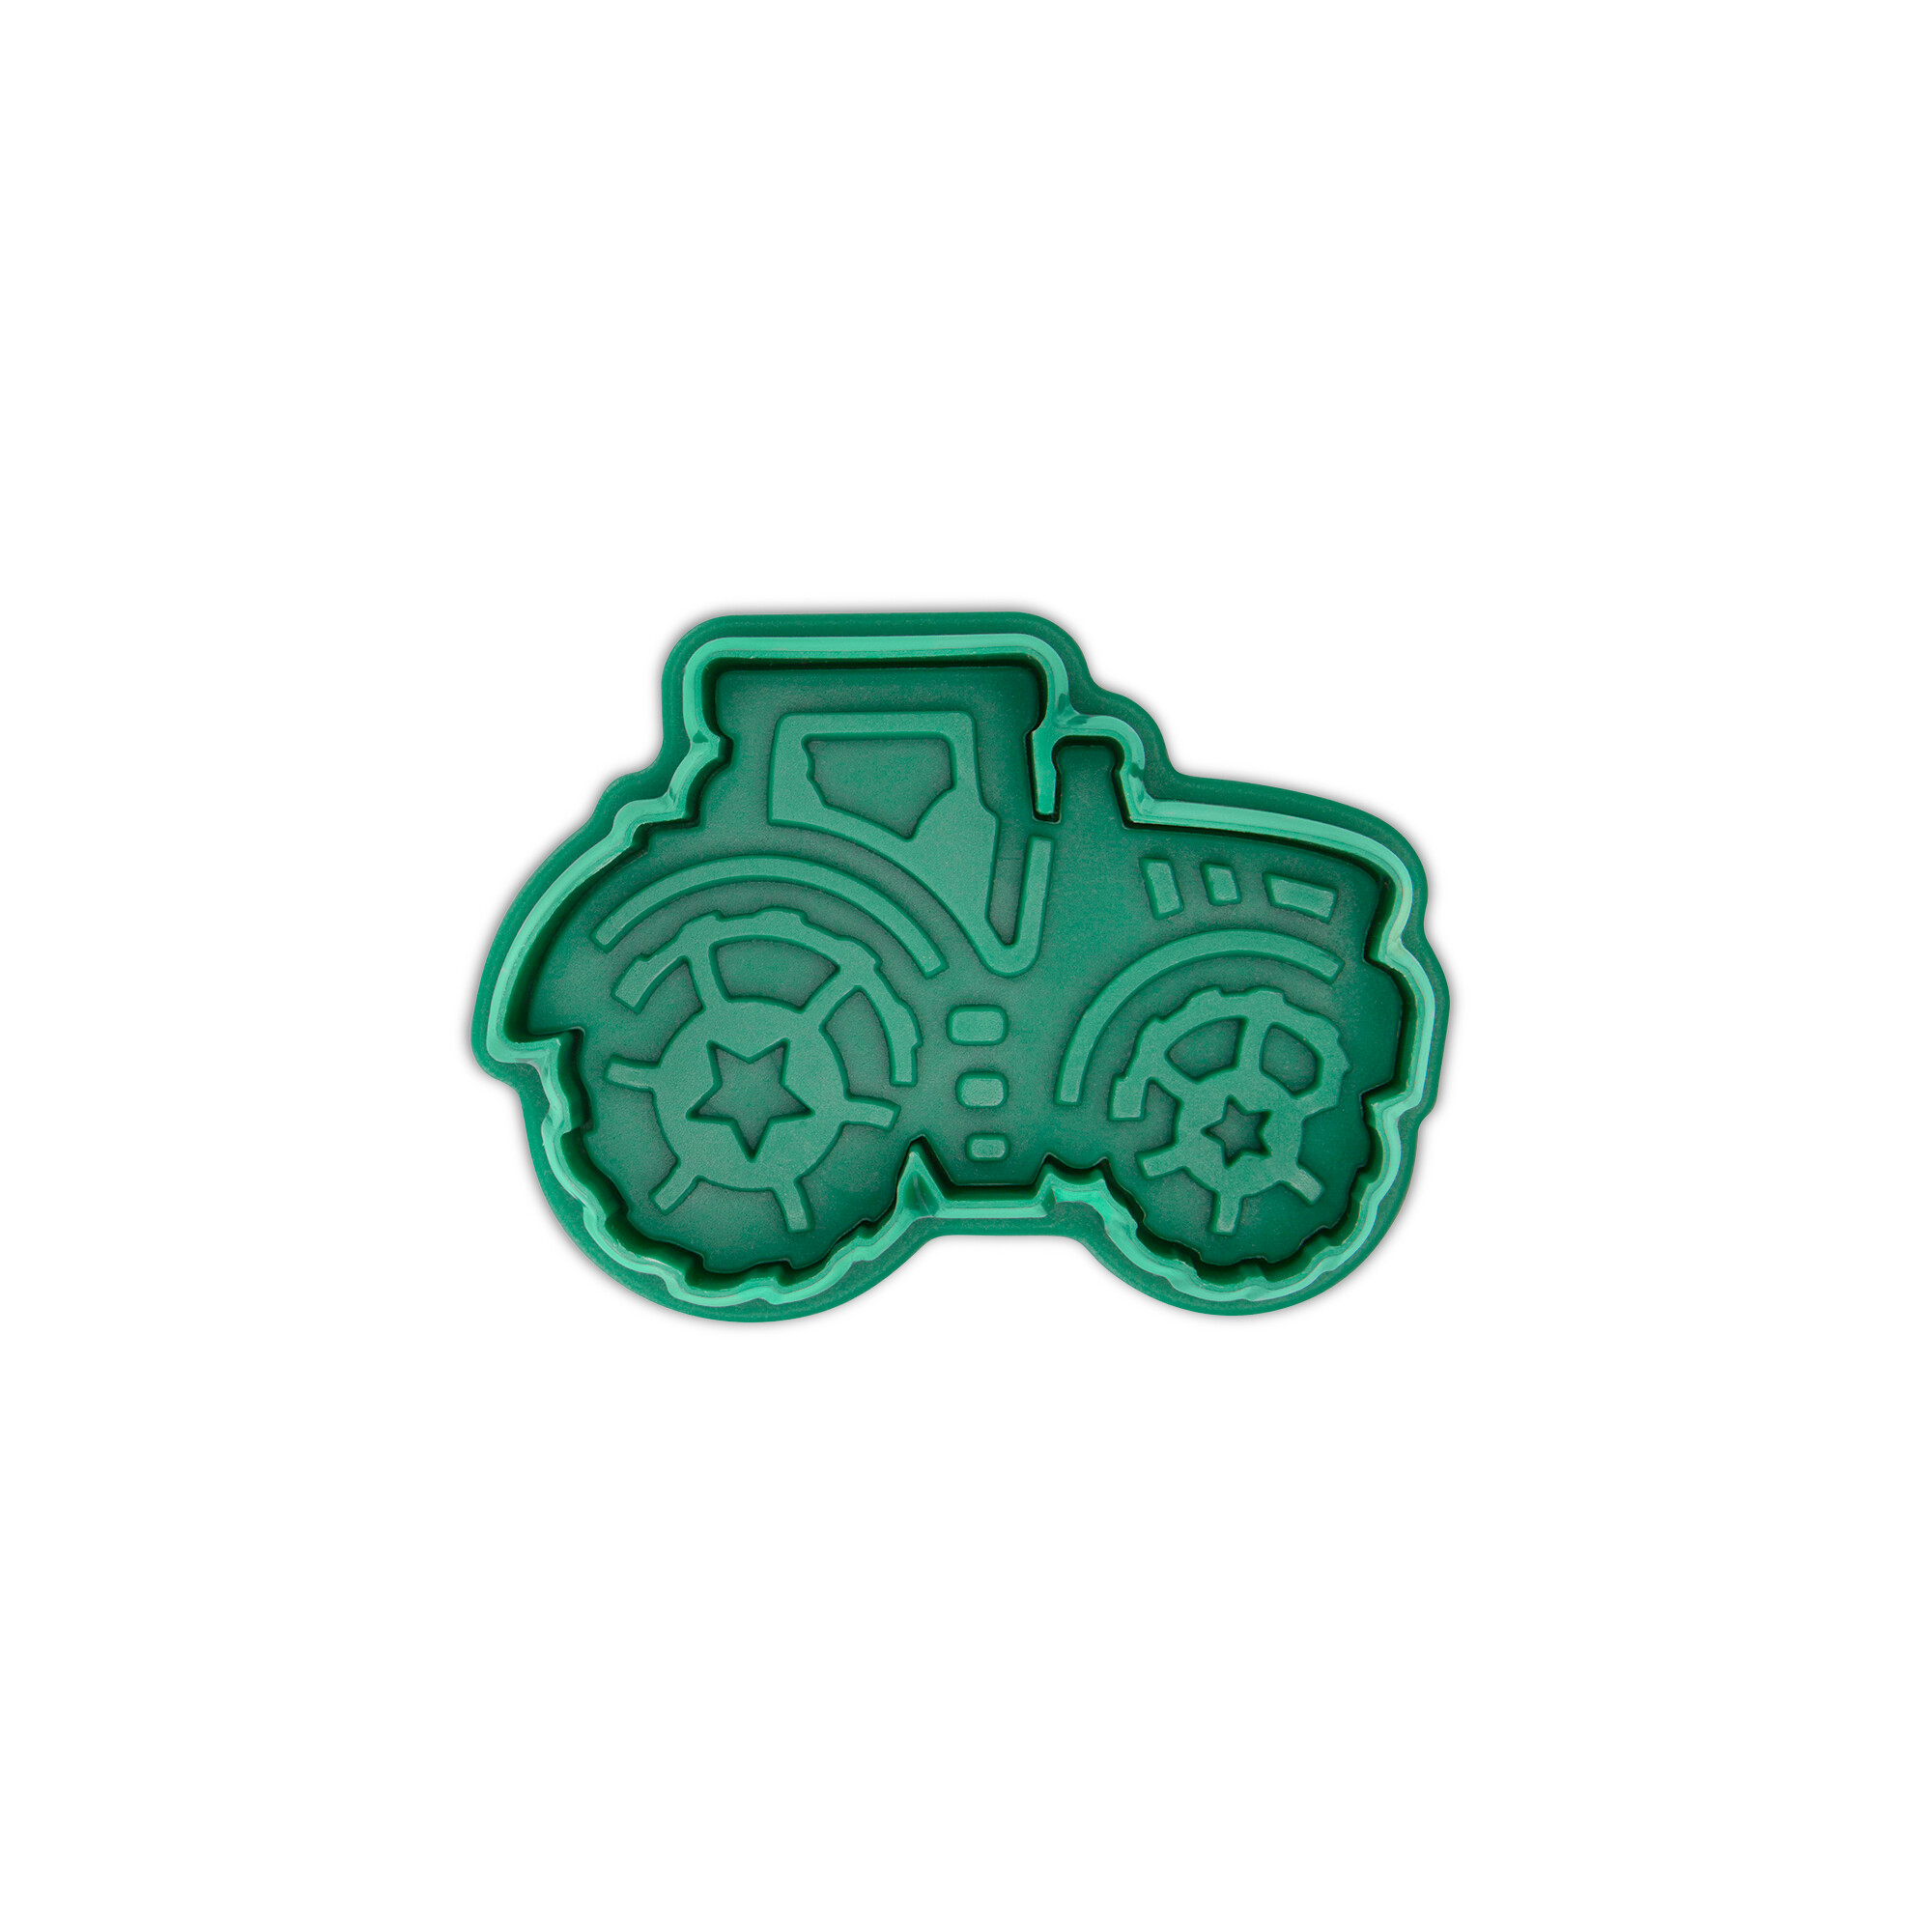 Cookie cutter with stamp and ejector - Tractor